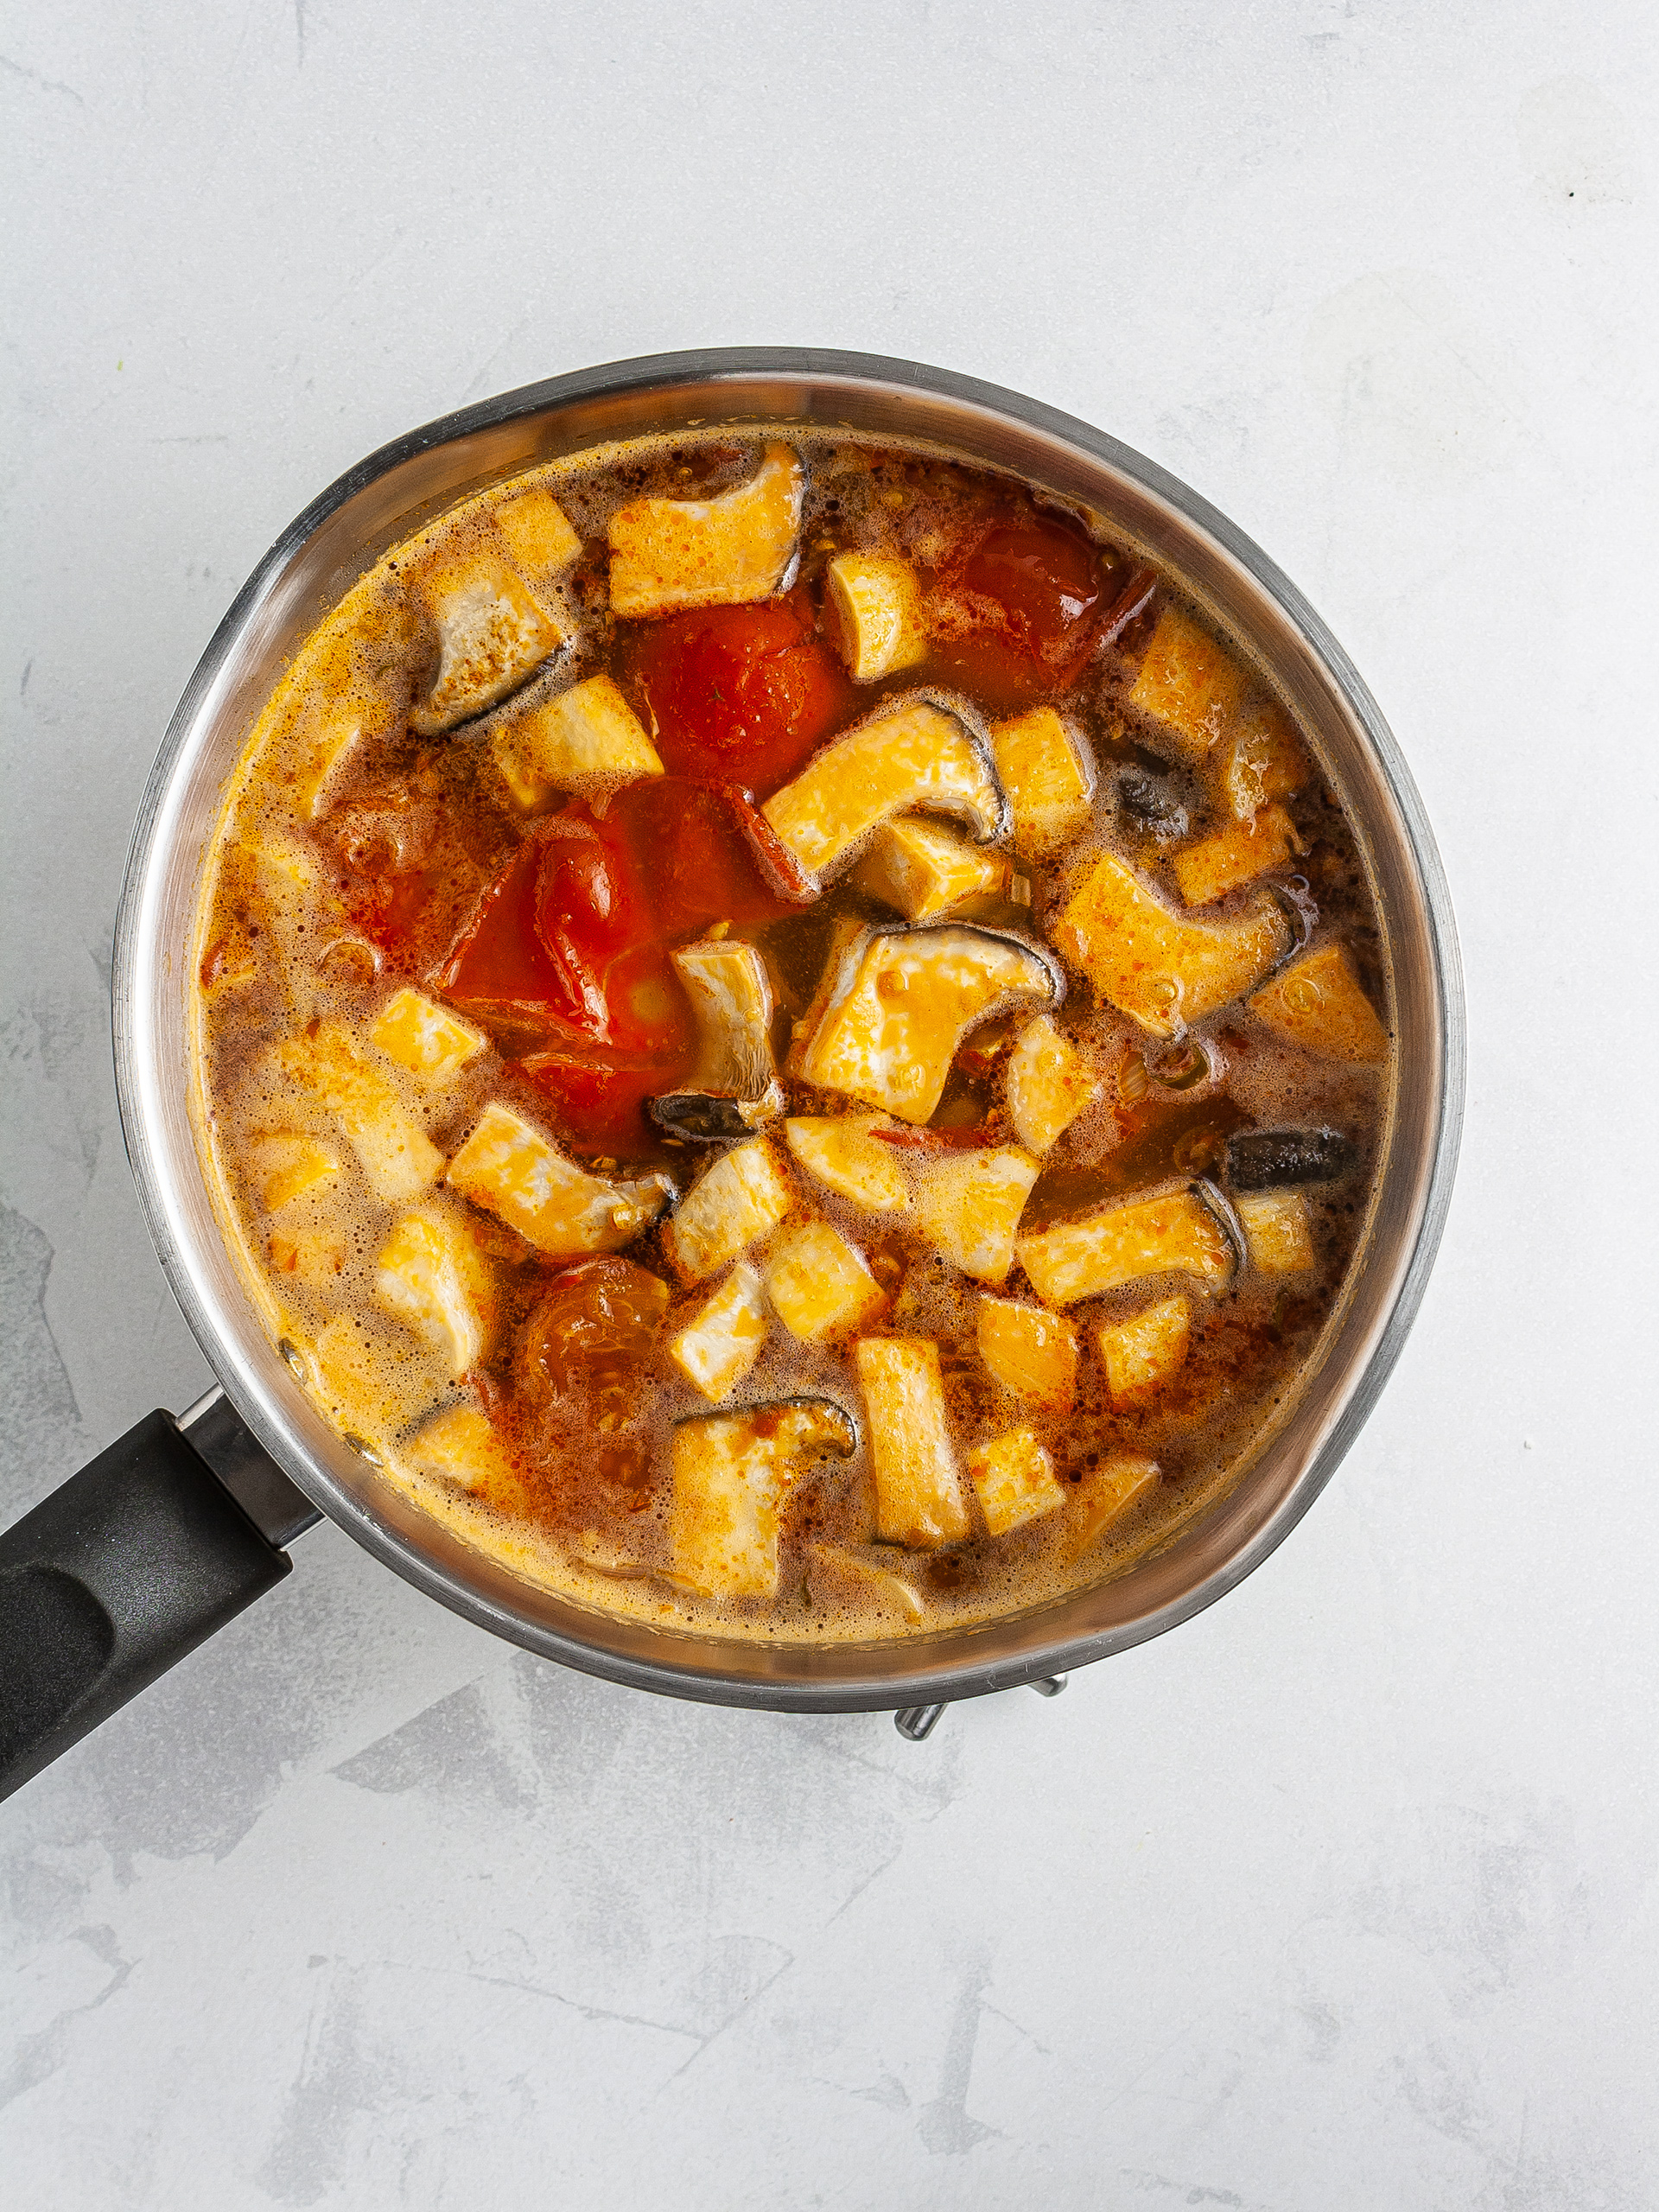 Tomatoes and mushroom in fish stock